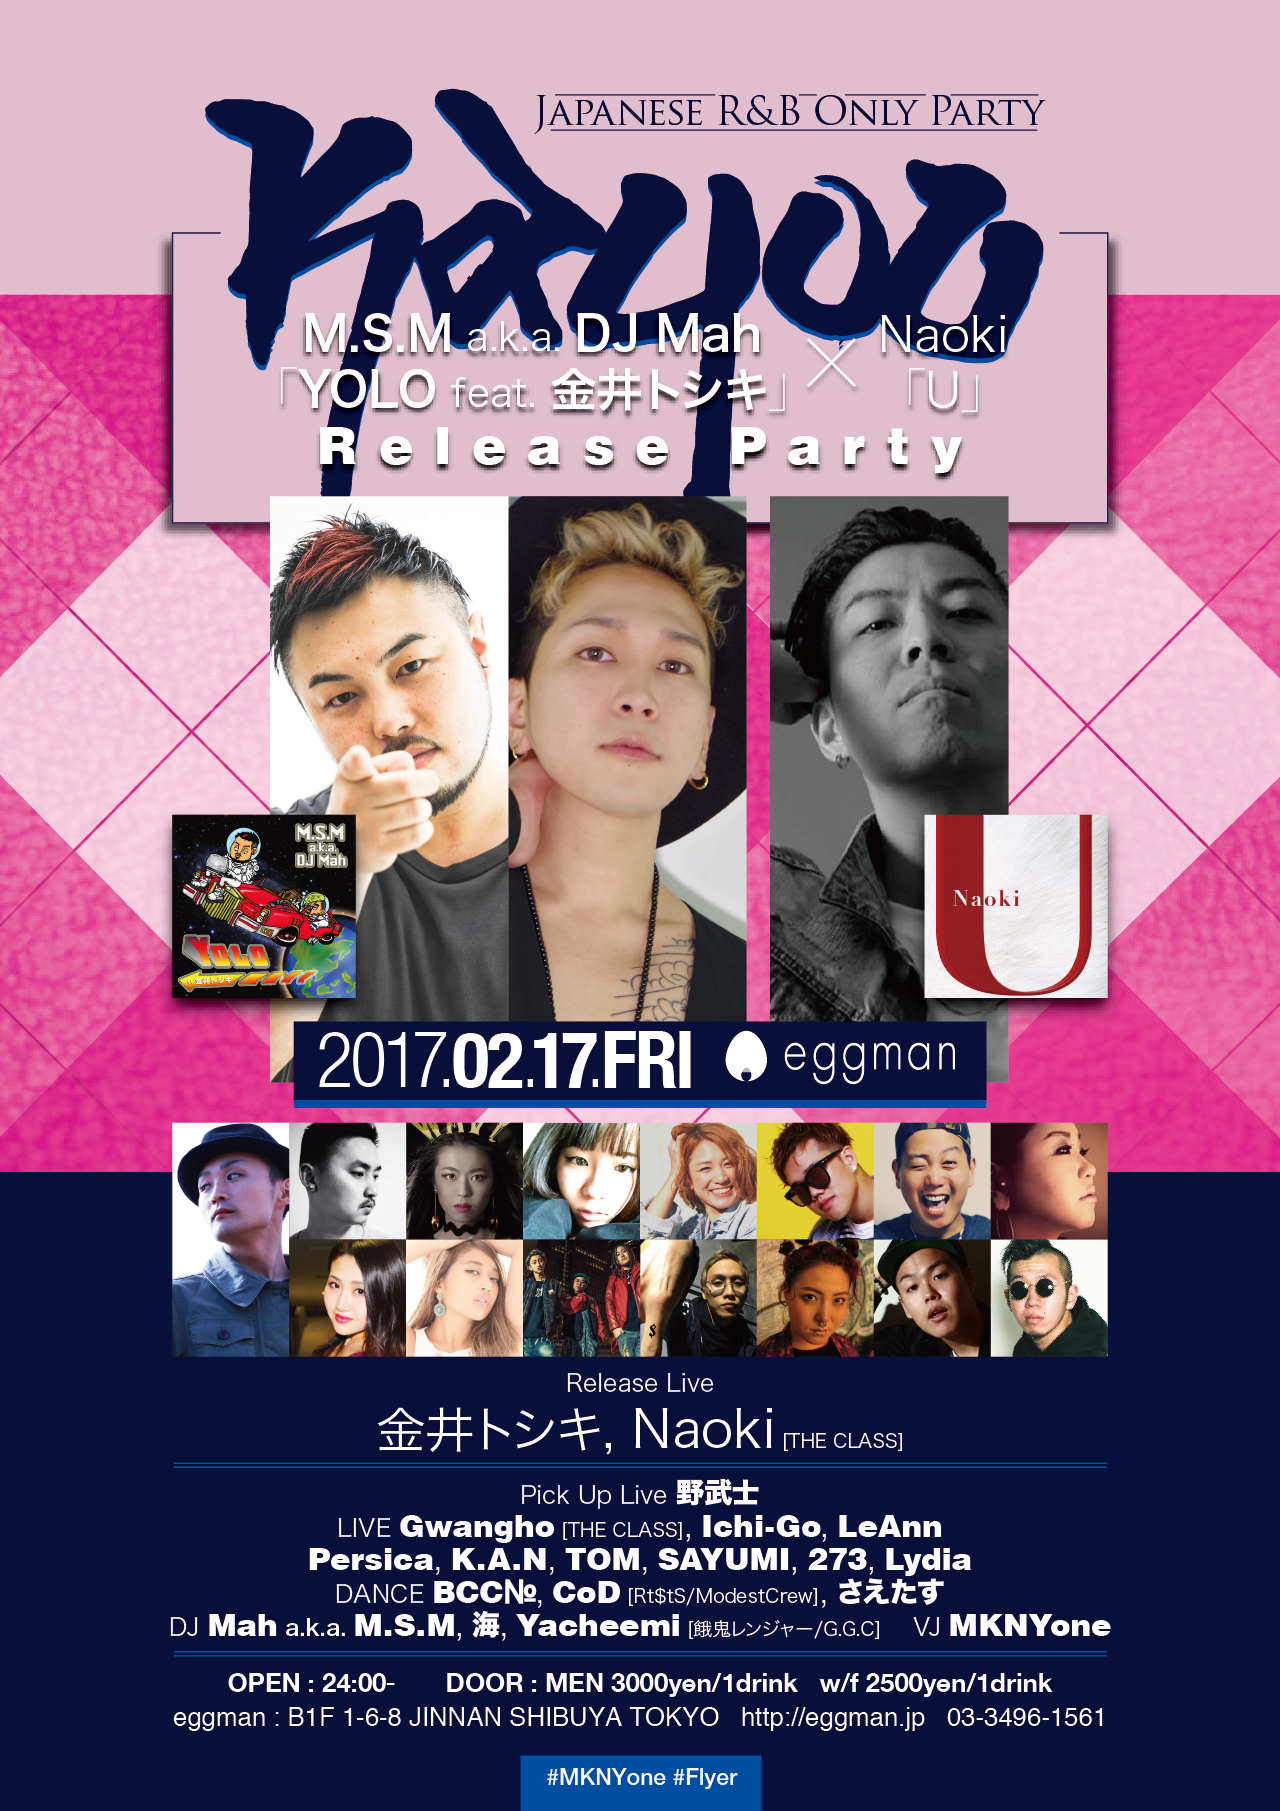 KAYOU ~JAPANESE R&#038;B ONLY PARTY~<br>M.S.M a.k.a. DJ Mah『YOLO feat. 金井トシキ』× Naoki『U』Release Party